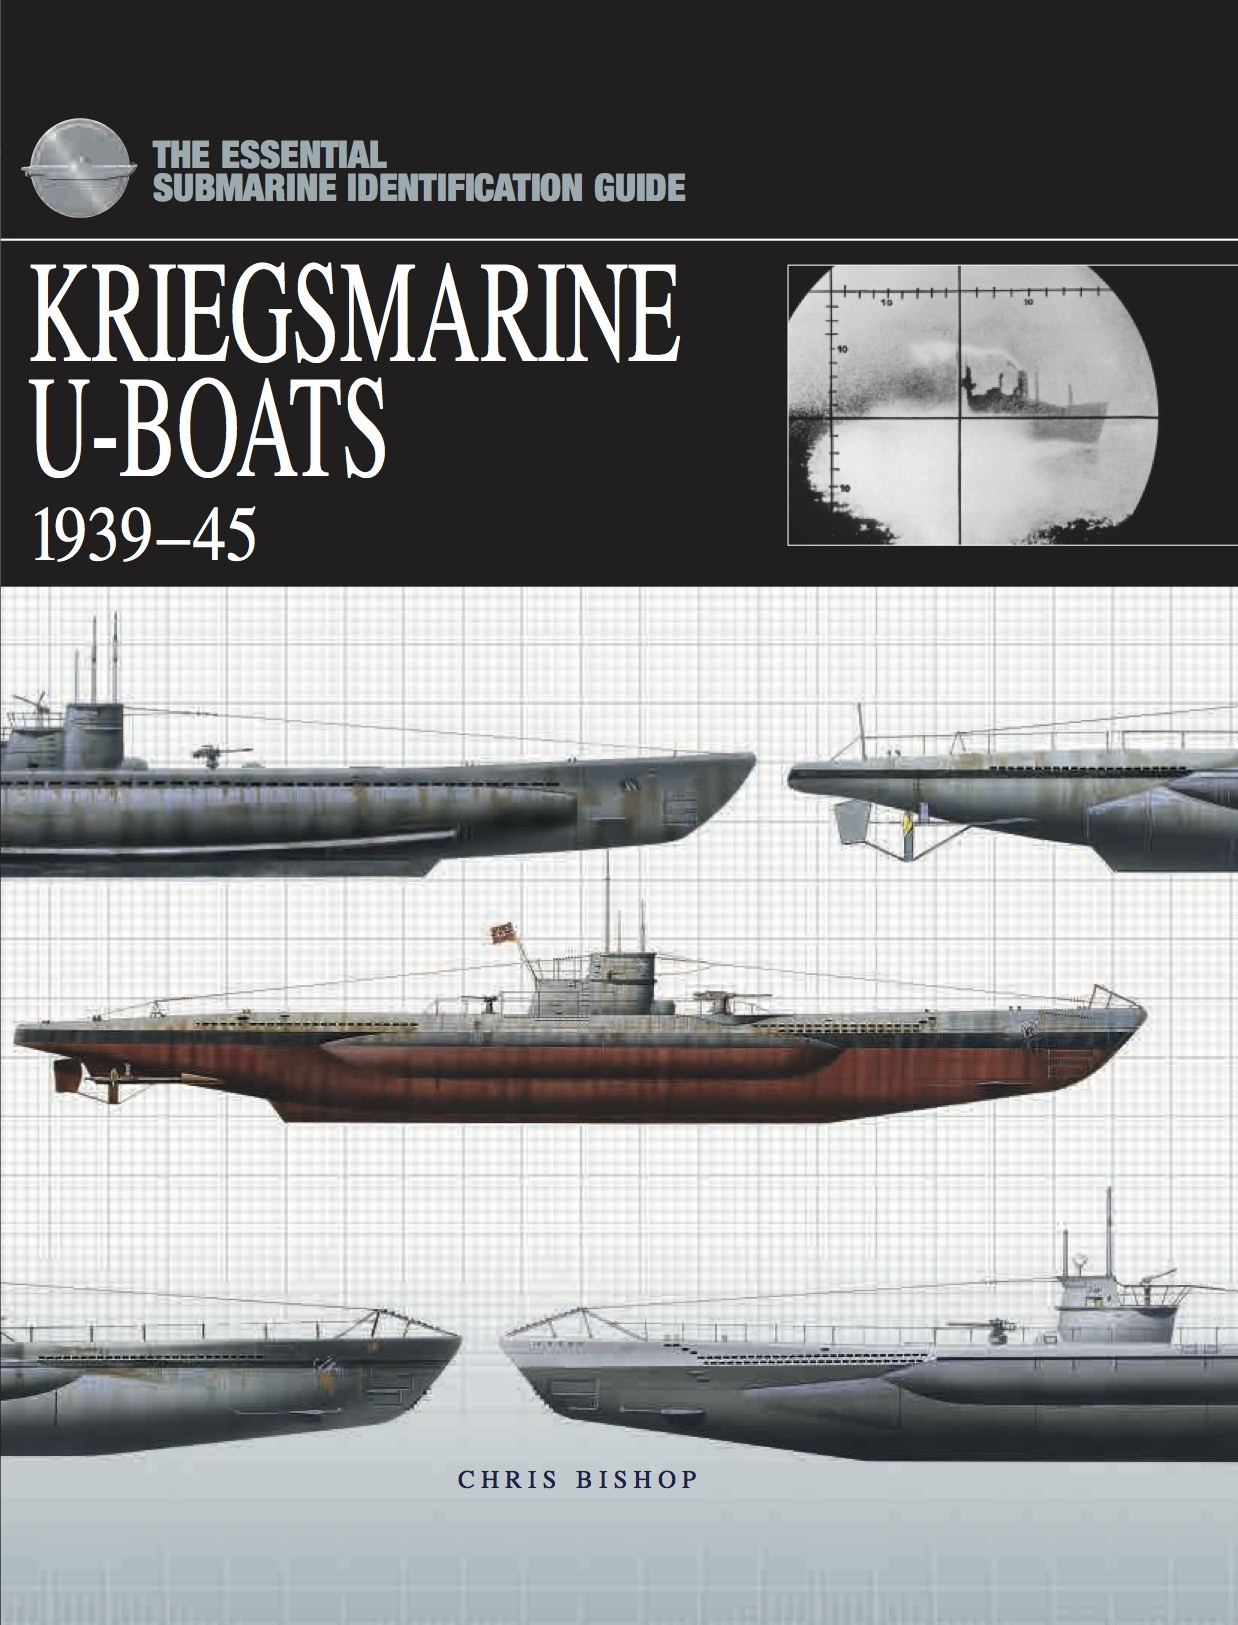 Essential Submarine Identification Guide: Kriegsmarine U-Boats 1939-45